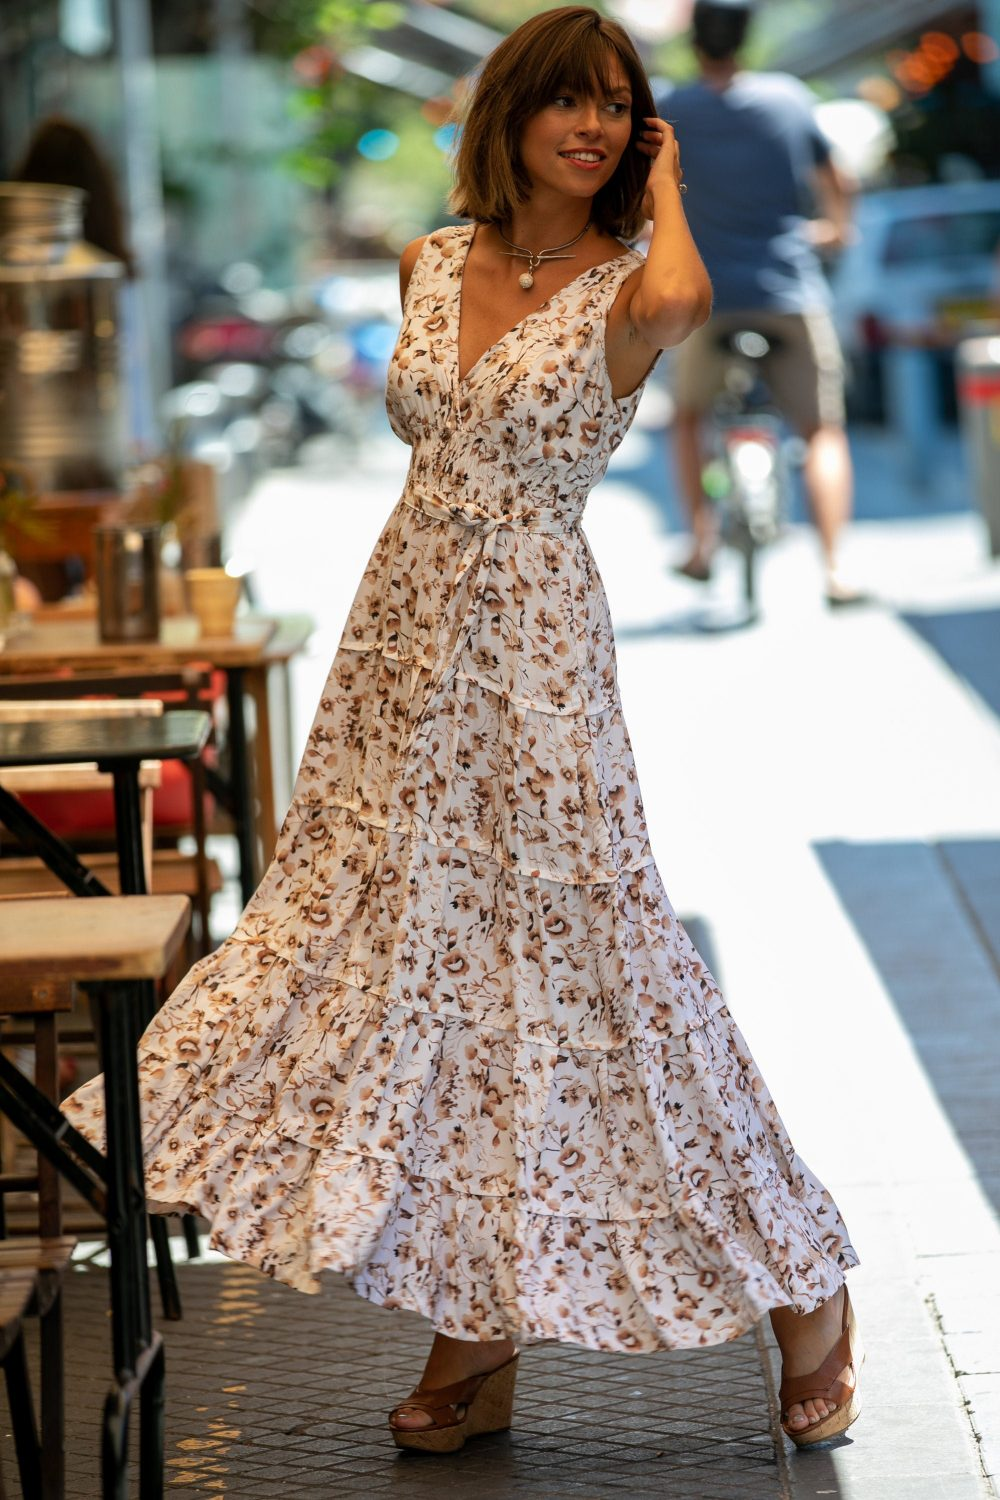 Cream Cotton Floral Maxi Dress, Urban Casual & Special Occasion Summer Bohemian Long Carrie Fit & Flare Empire Waist Dress